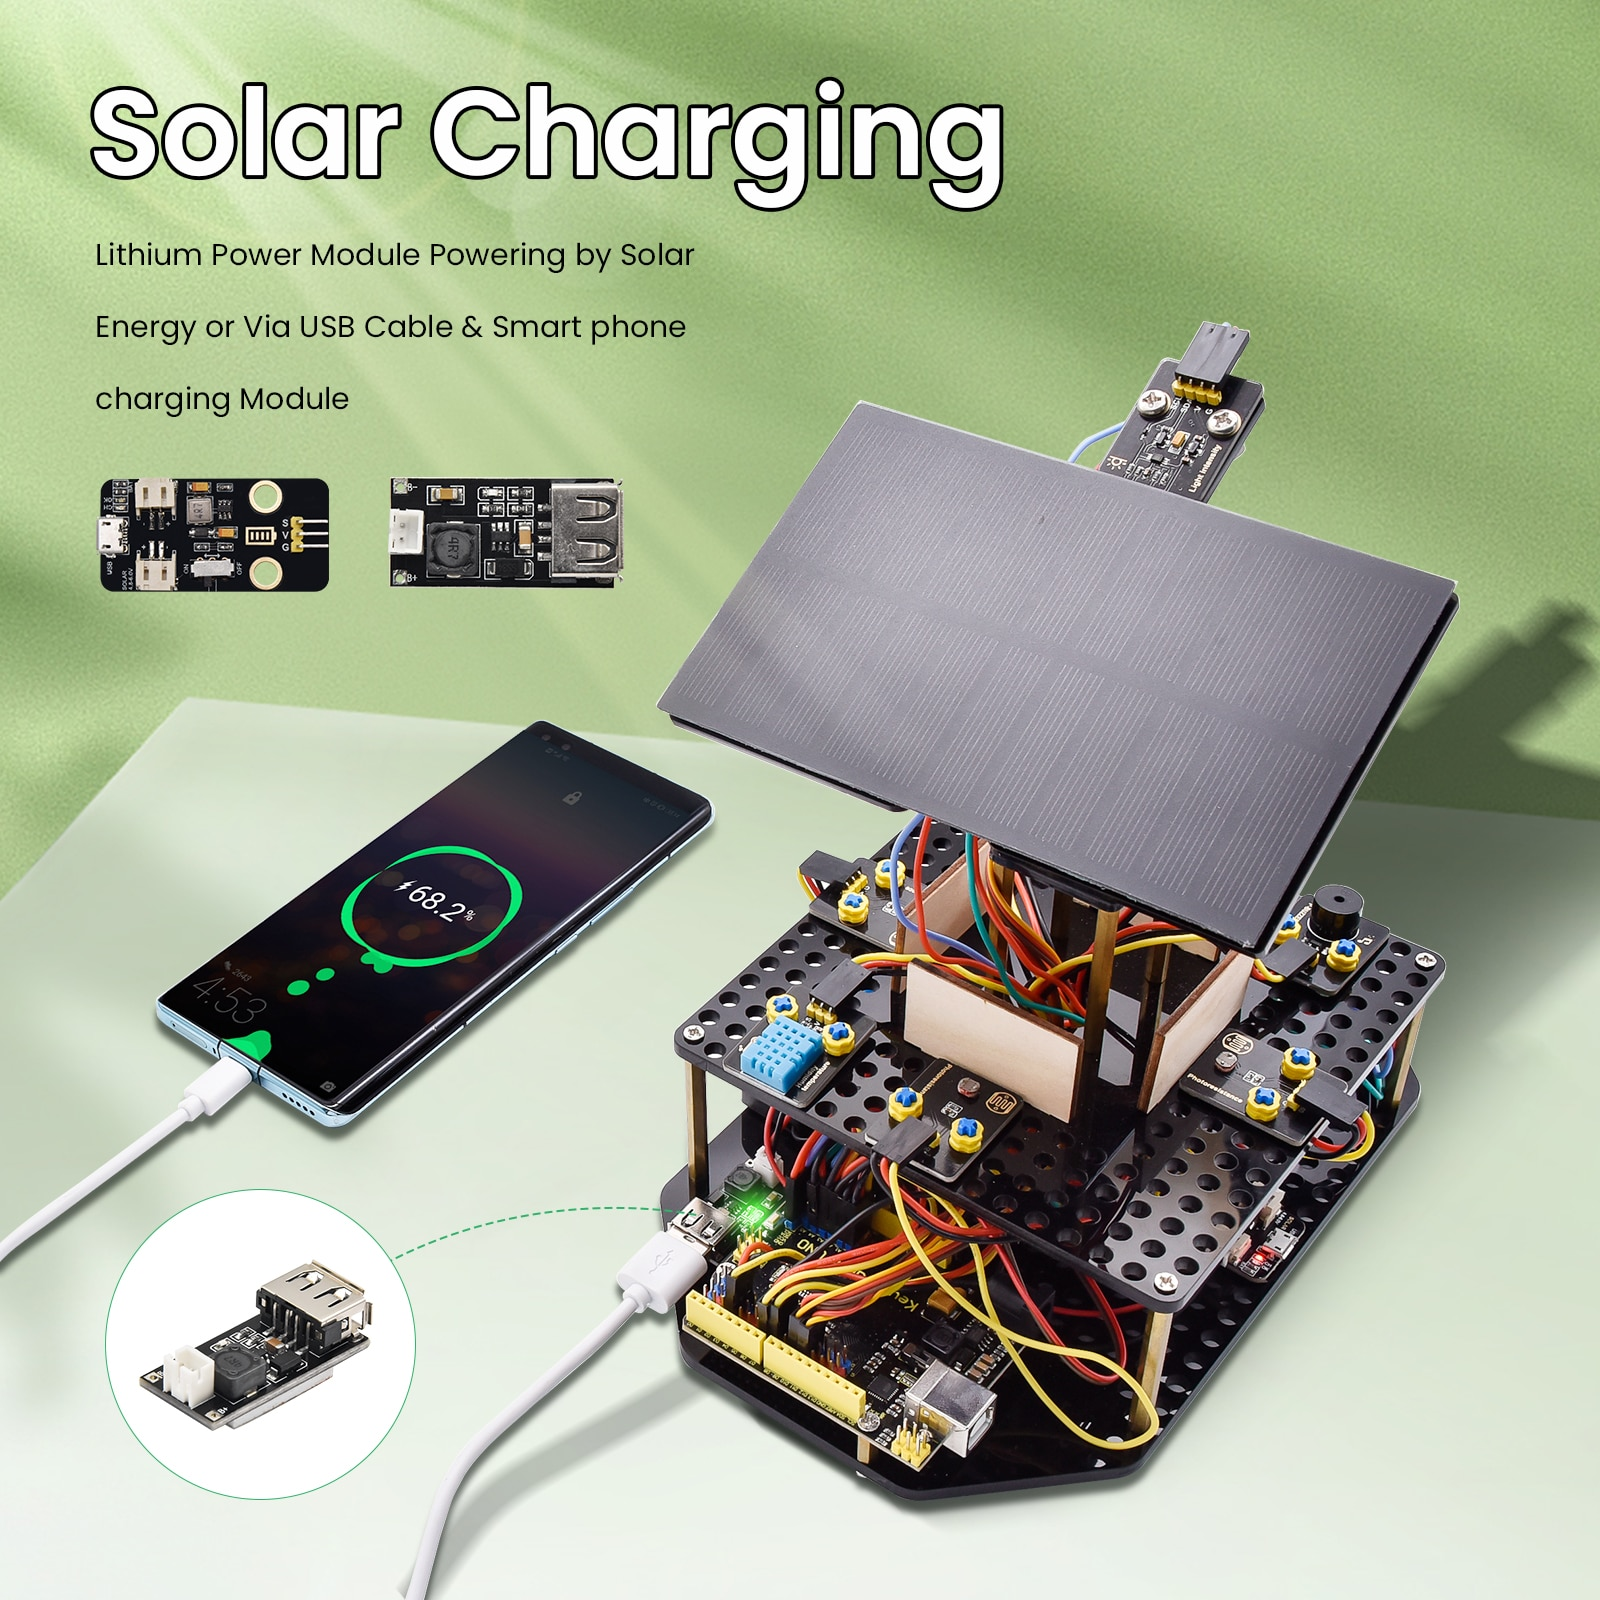 2021 New ! Keyestudio For Arduino Smart Solar Tracking Kit Can Use For Mobile Phone Charging Starter Project DIY STEM Toy enlarge